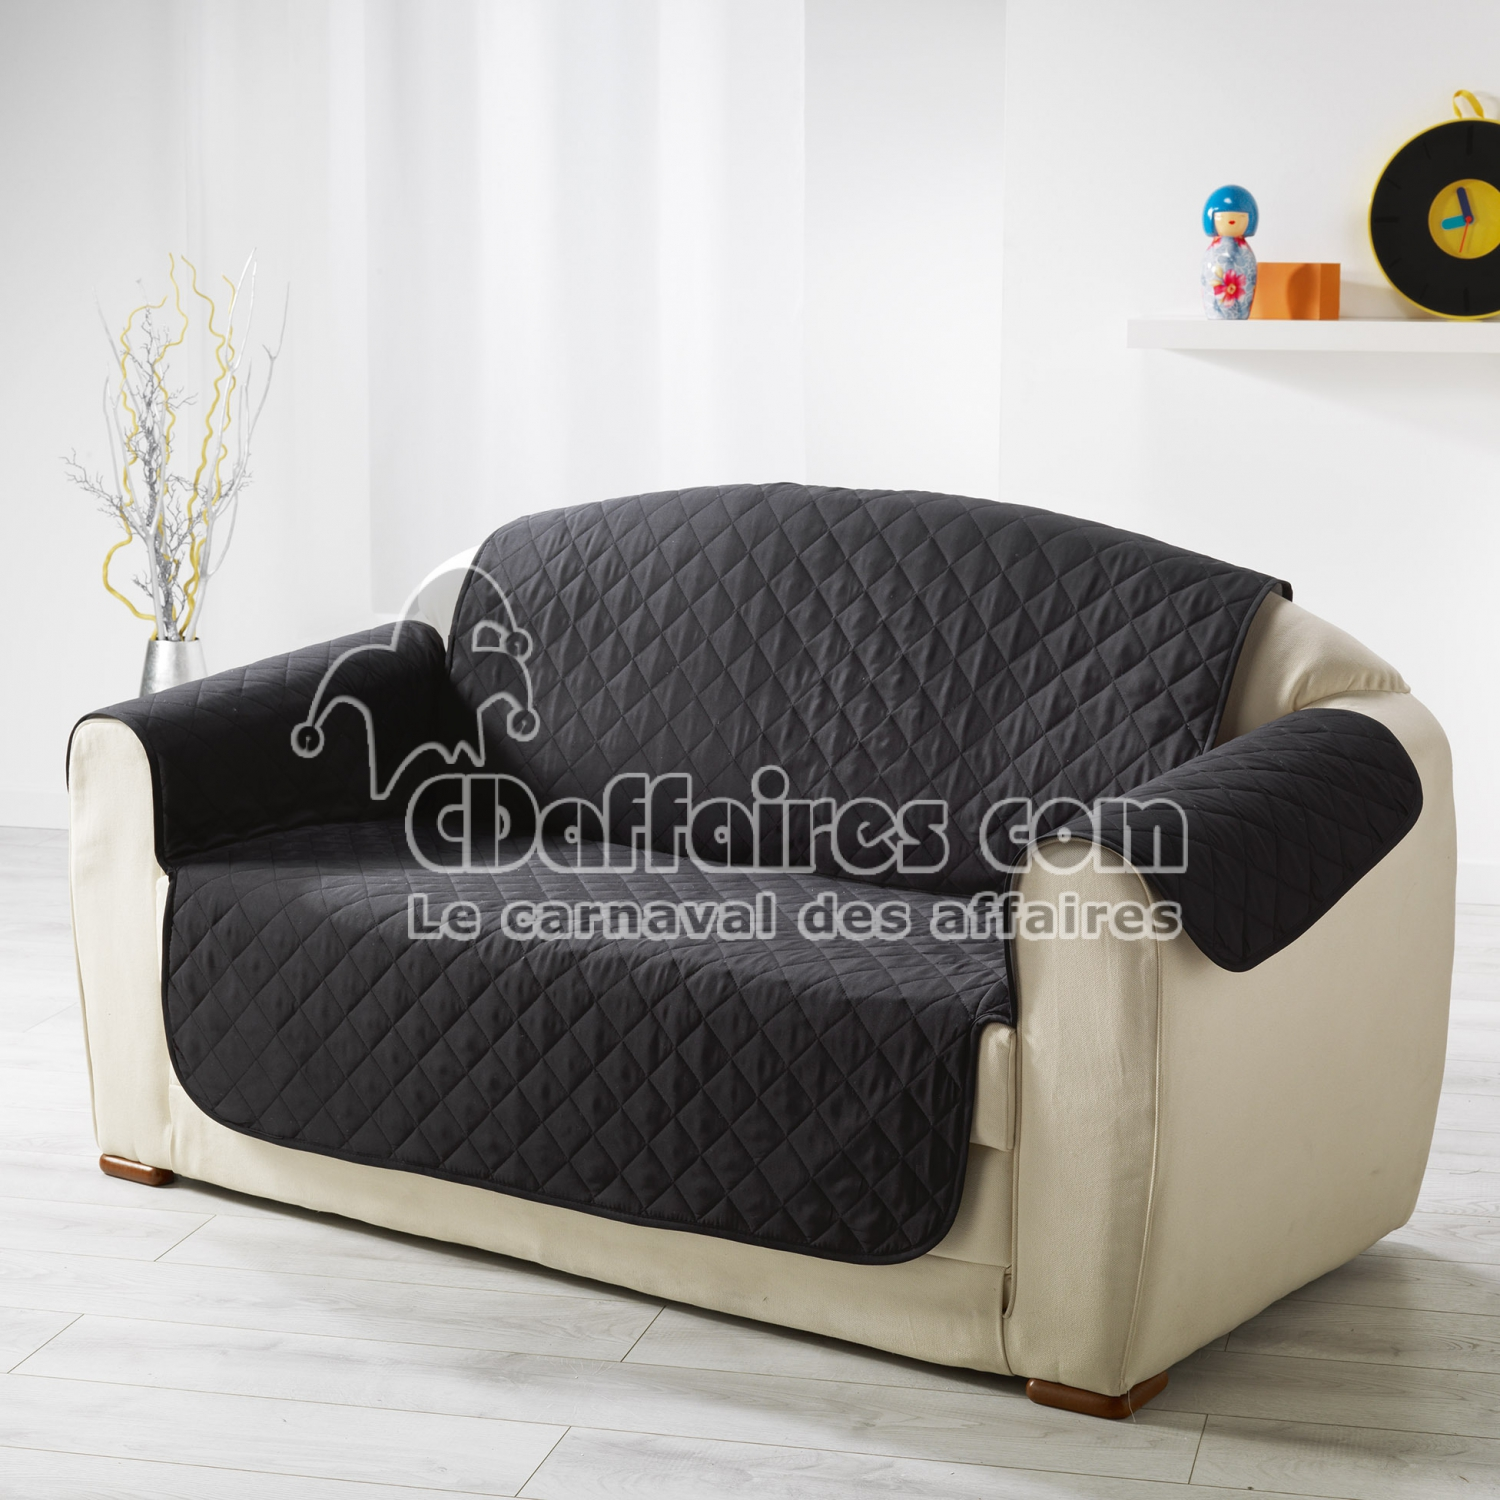 protege canape matelasse 279 x 179 cm microfibre unie club noir cdaffaires. Black Bedroom Furniture Sets. Home Design Ideas